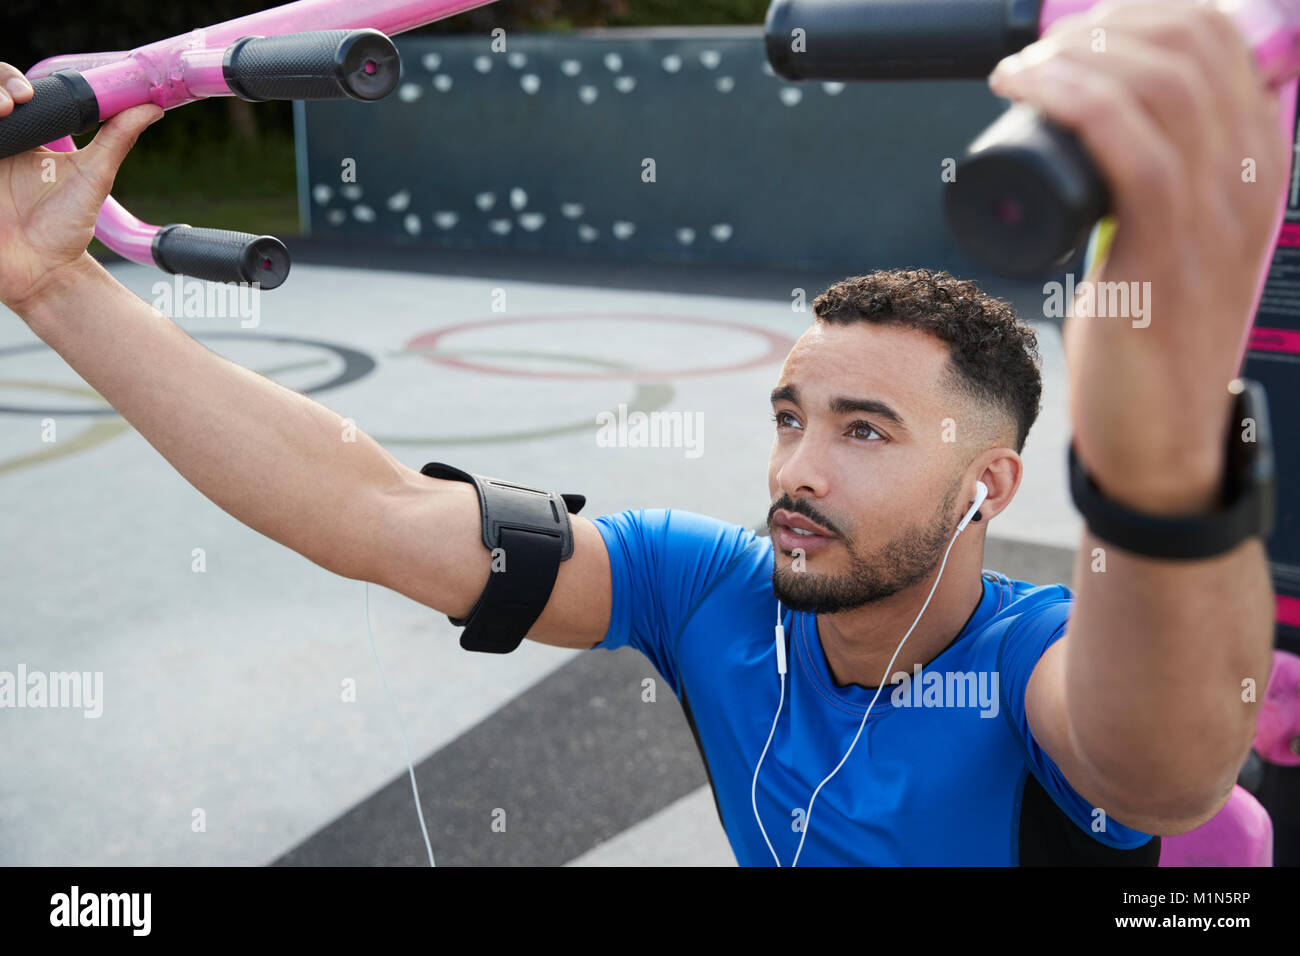 Young male athlete using outdoor gym in park, close up - Stock Image